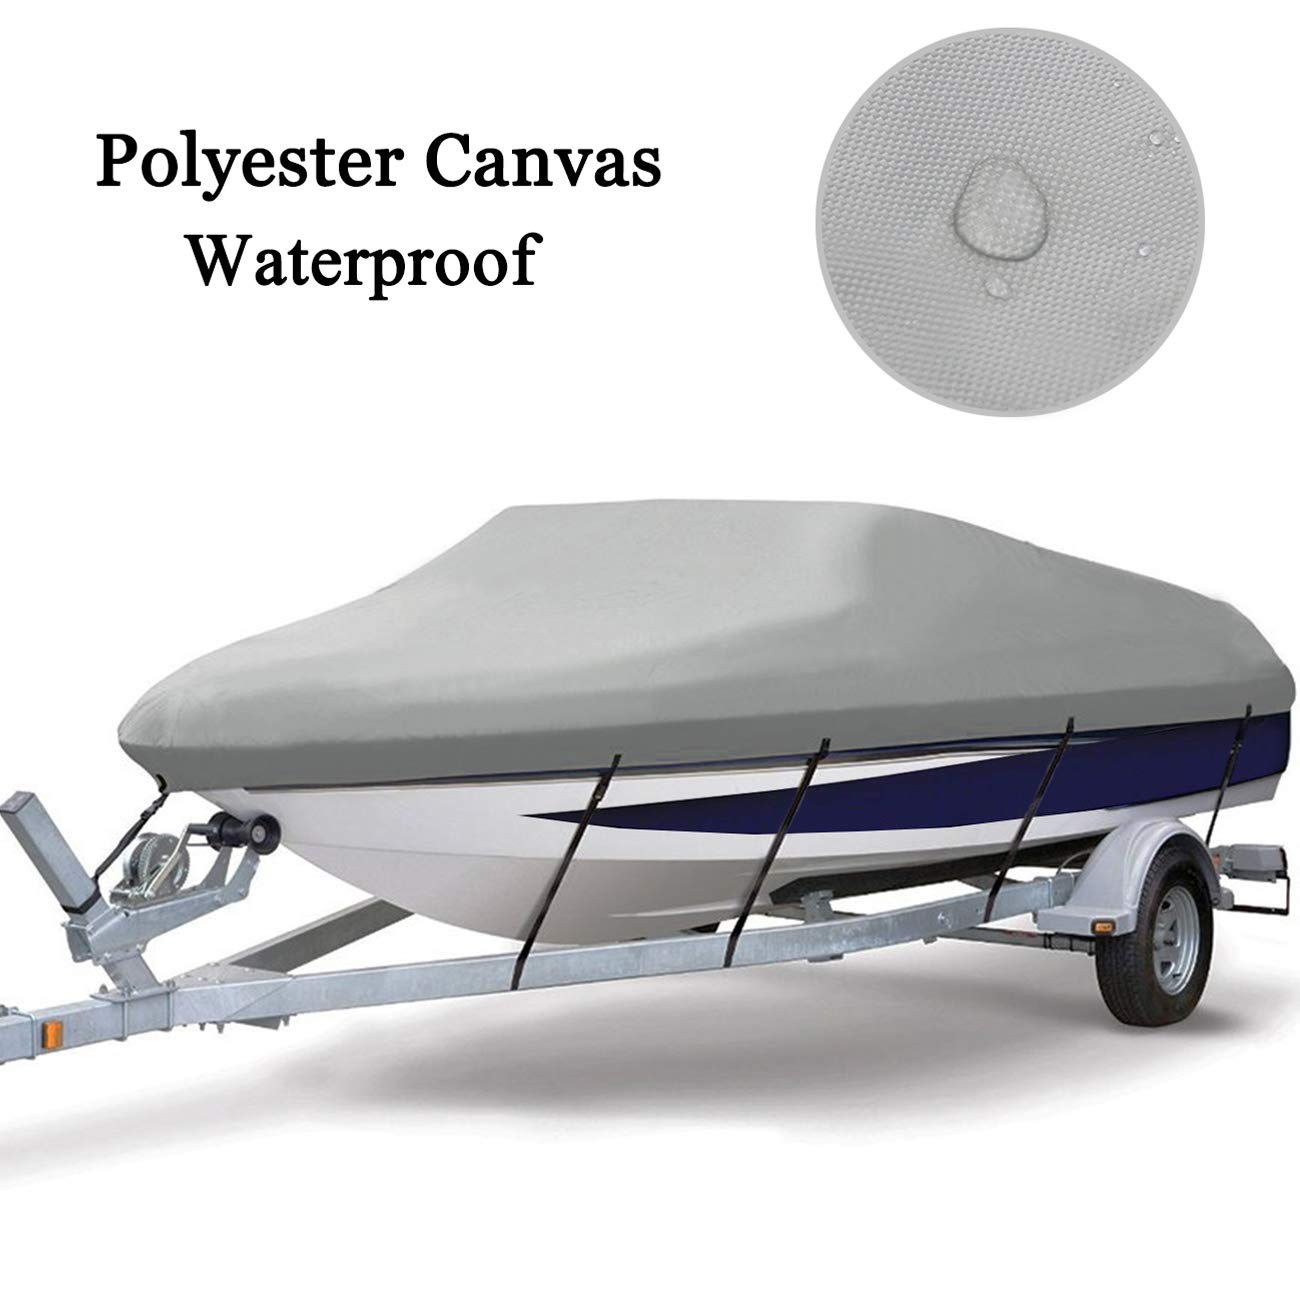 MSC Heavy Duty 300D Marine Grade Polyester Canvas Trailerable Waterproof Boat Cover Runabout Boat Cover,Full Size Boat Cover Summates Gray,Fits V-Hull,Tri-Hull